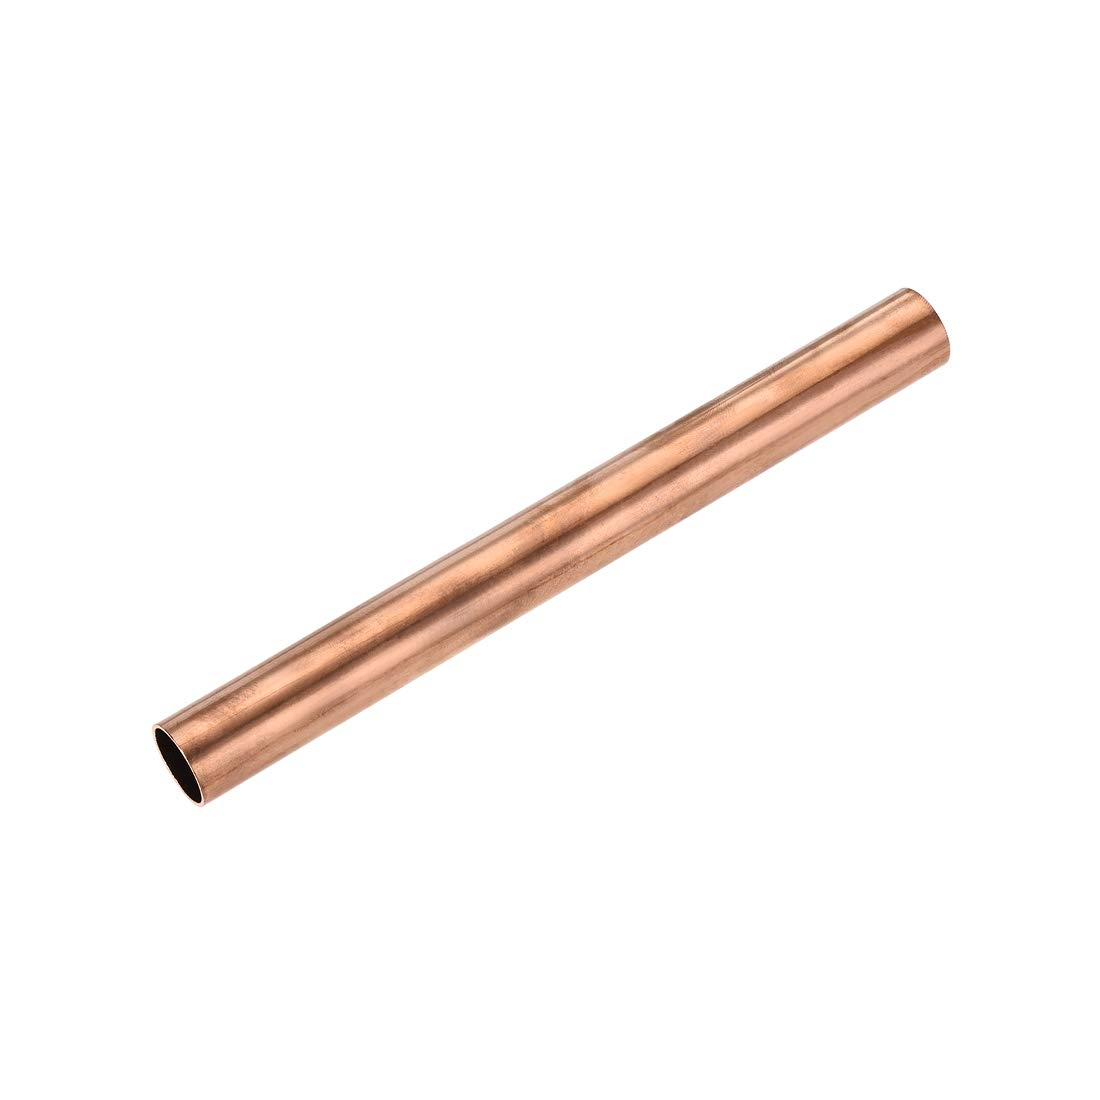 uxcell Copper Round Tube, 20mm OD 1mm Wall Thickness 200mm Length Straight Pipe Tubing